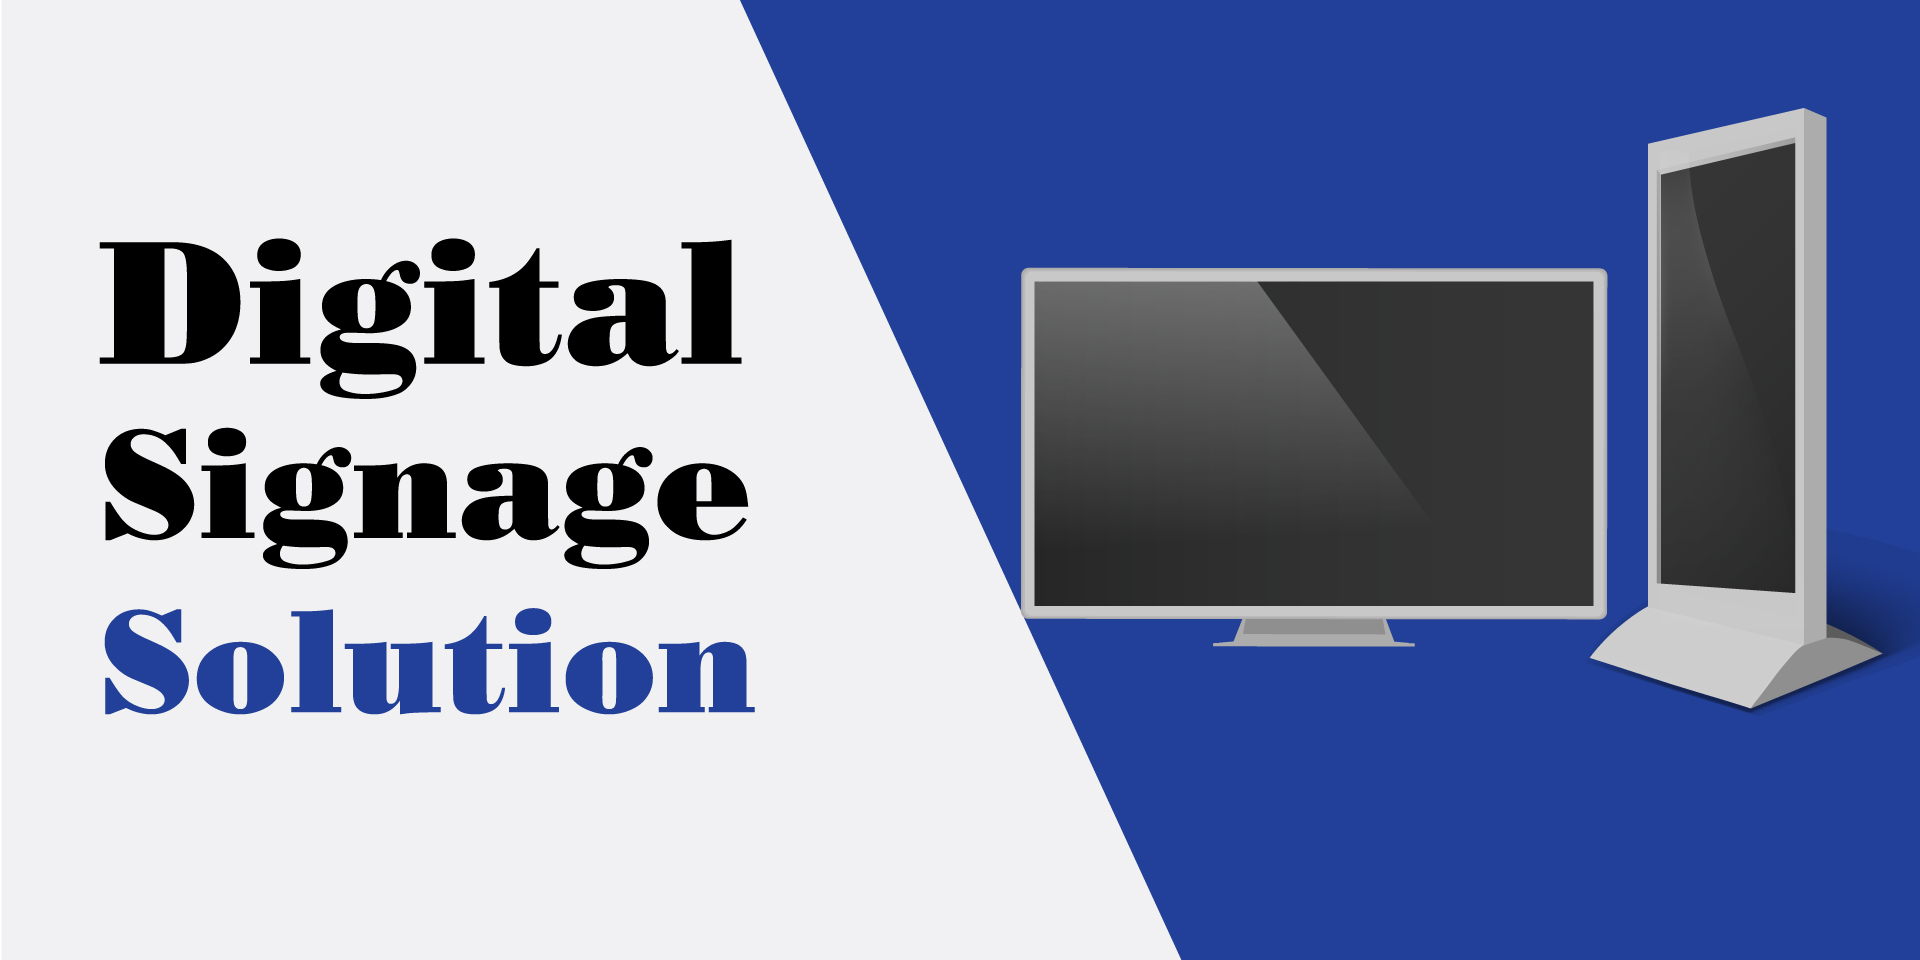 Digital-Signage-Solution.1